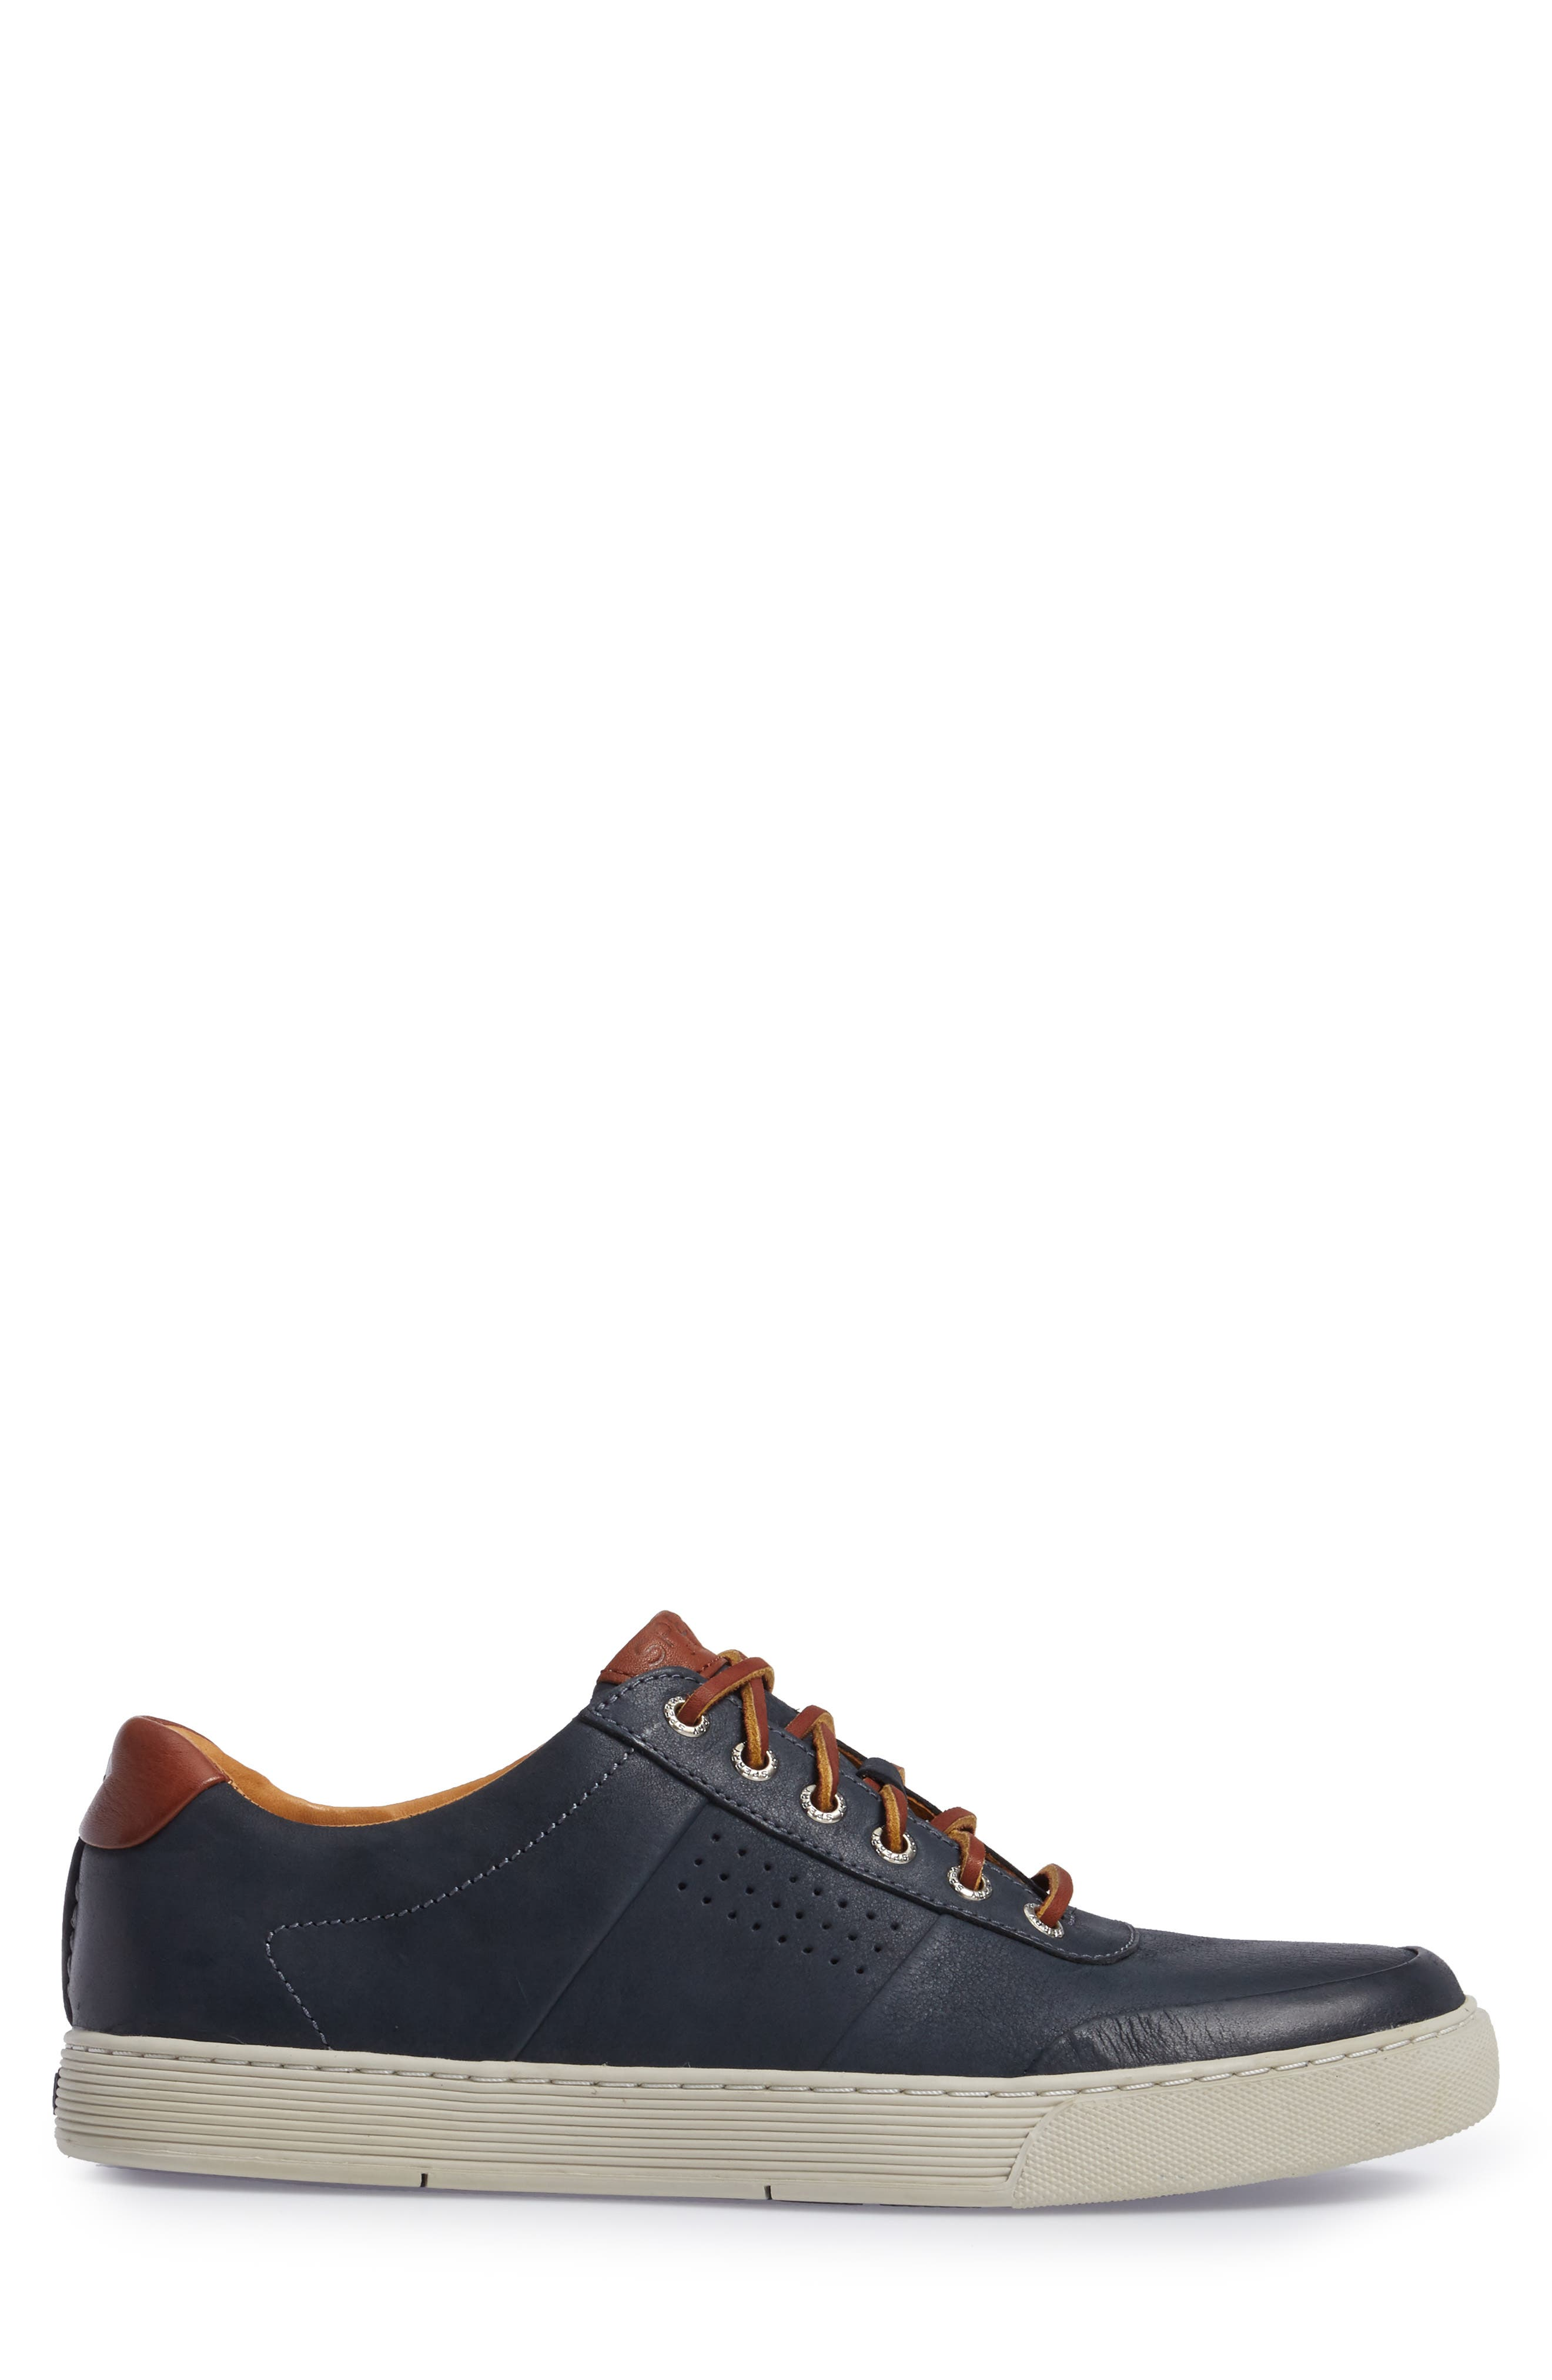 Gold Cup Sport Sneaker,                             Alternate thumbnail 3, color,                             410